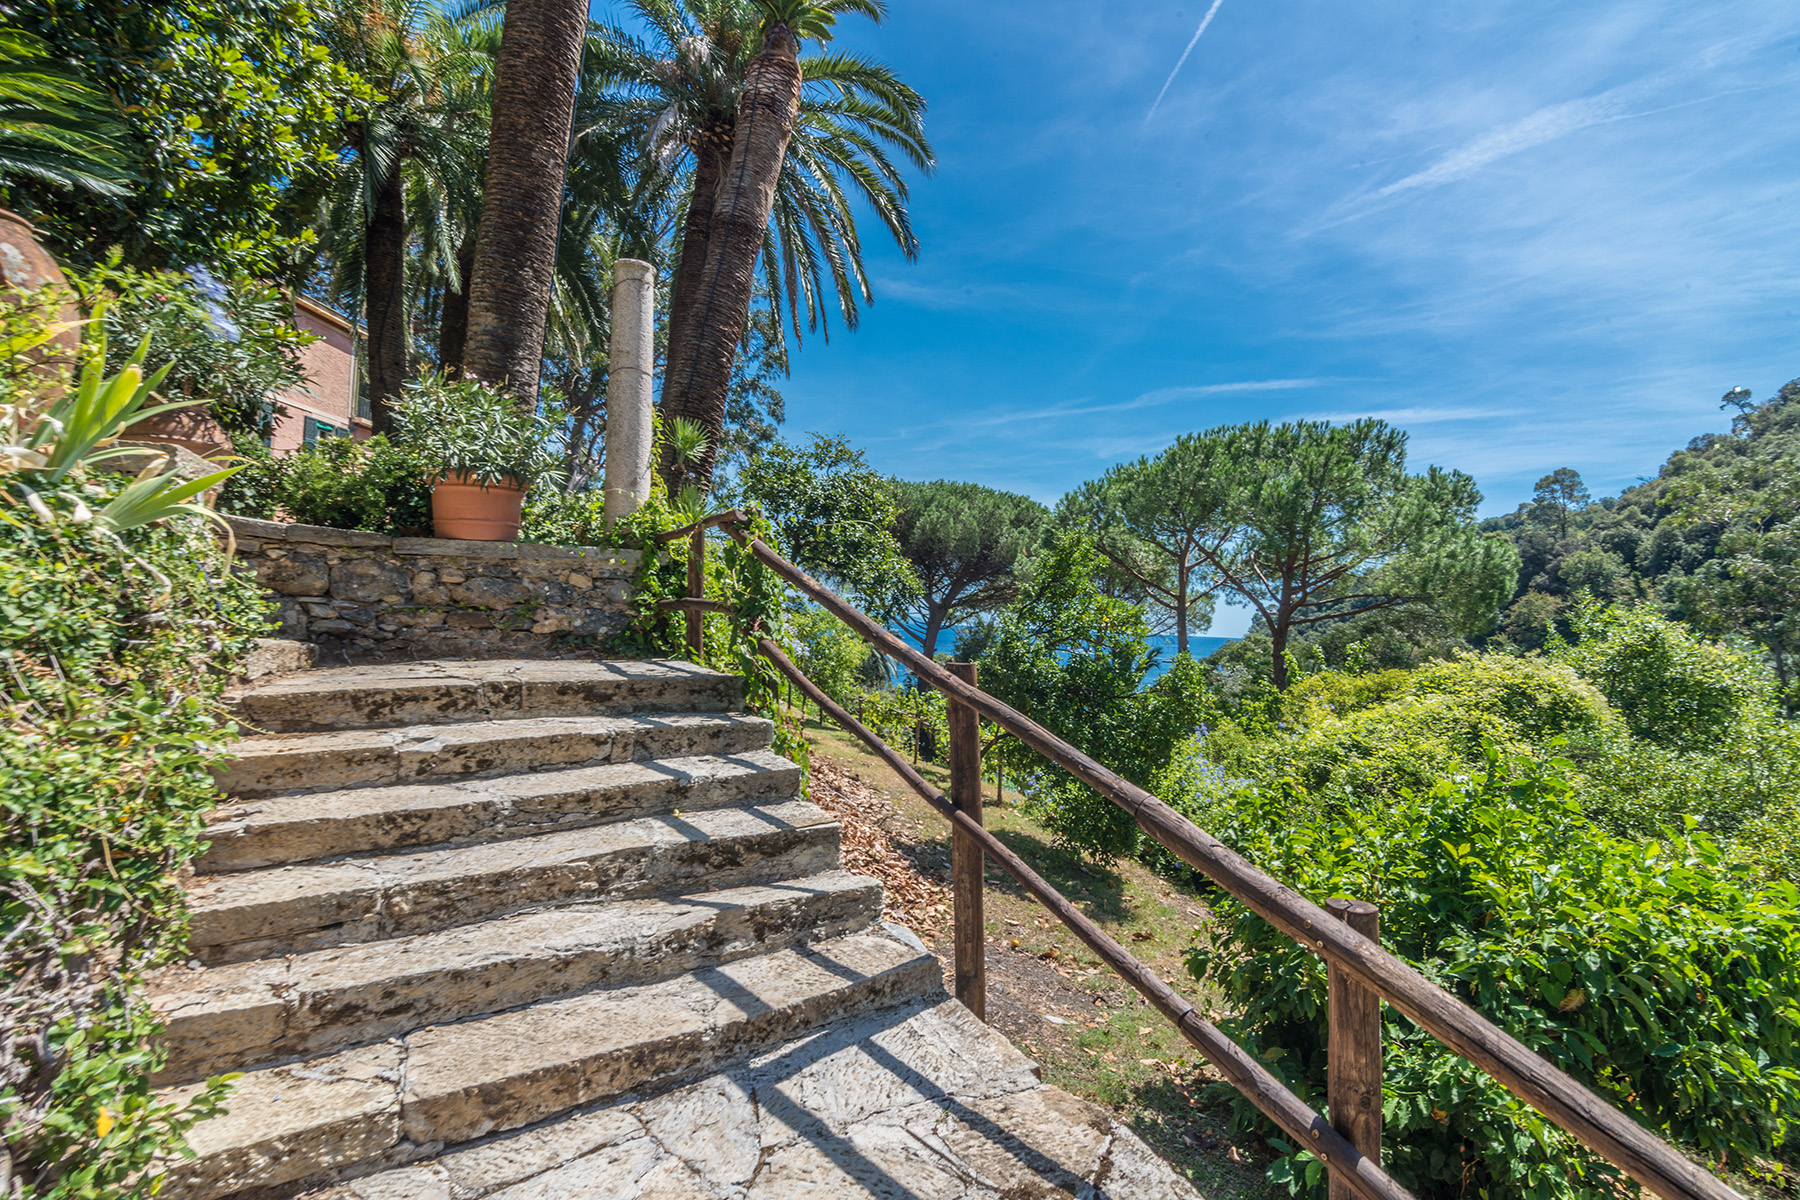 Additional photo for property listing at Magnifica villa a Paraggi nel parco di Portofino via di Paraggi Portofino, Genoa 16038 Italia